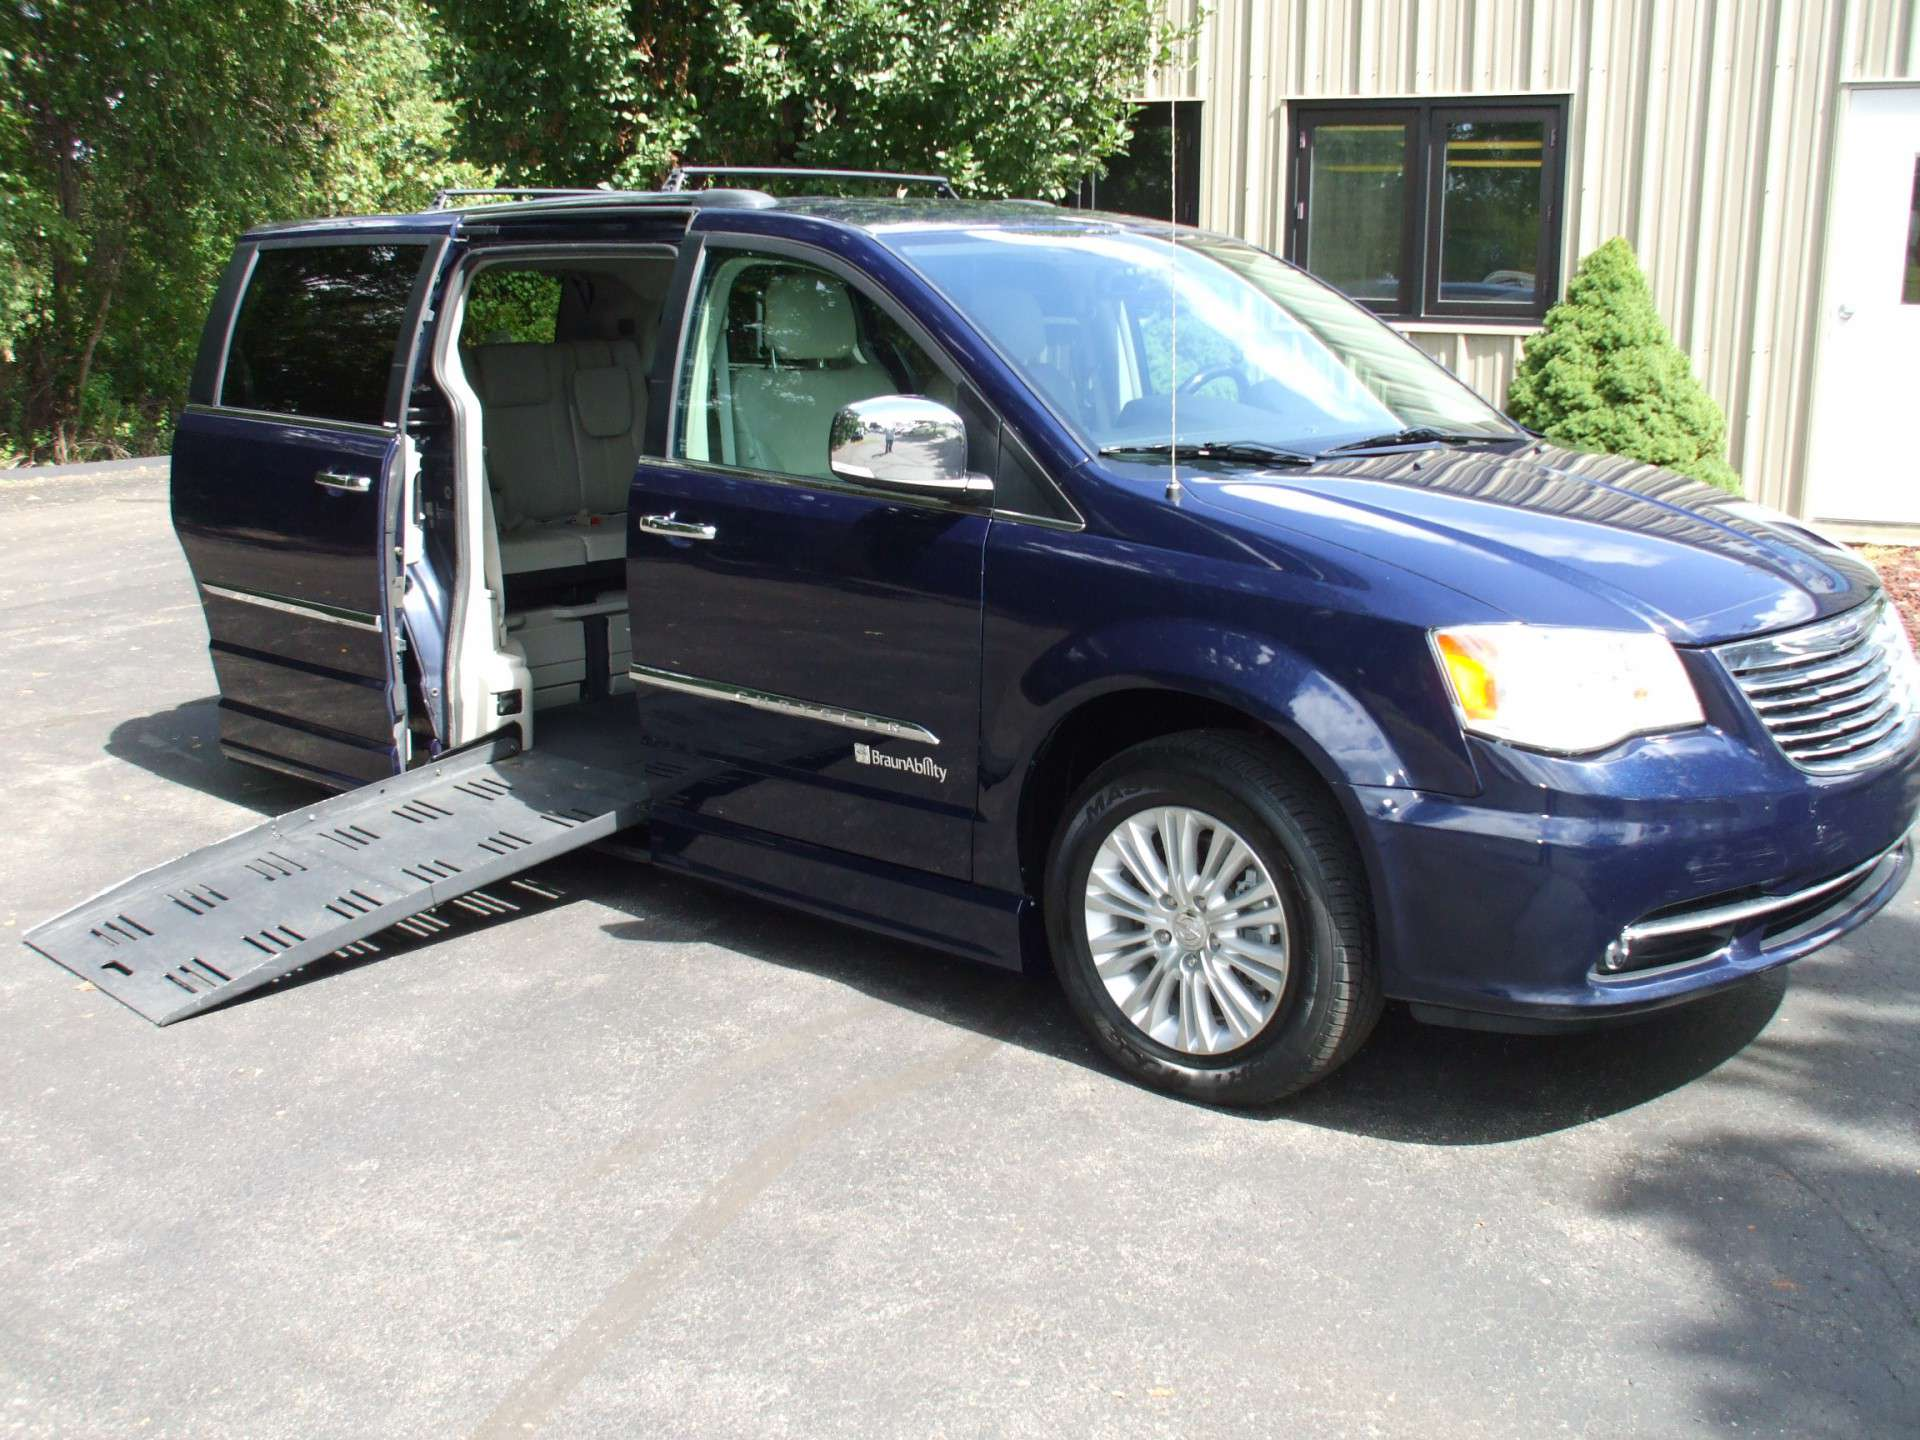 2013 Chrysler Town and Country | Stock: W7628 | Wheelchair Van For